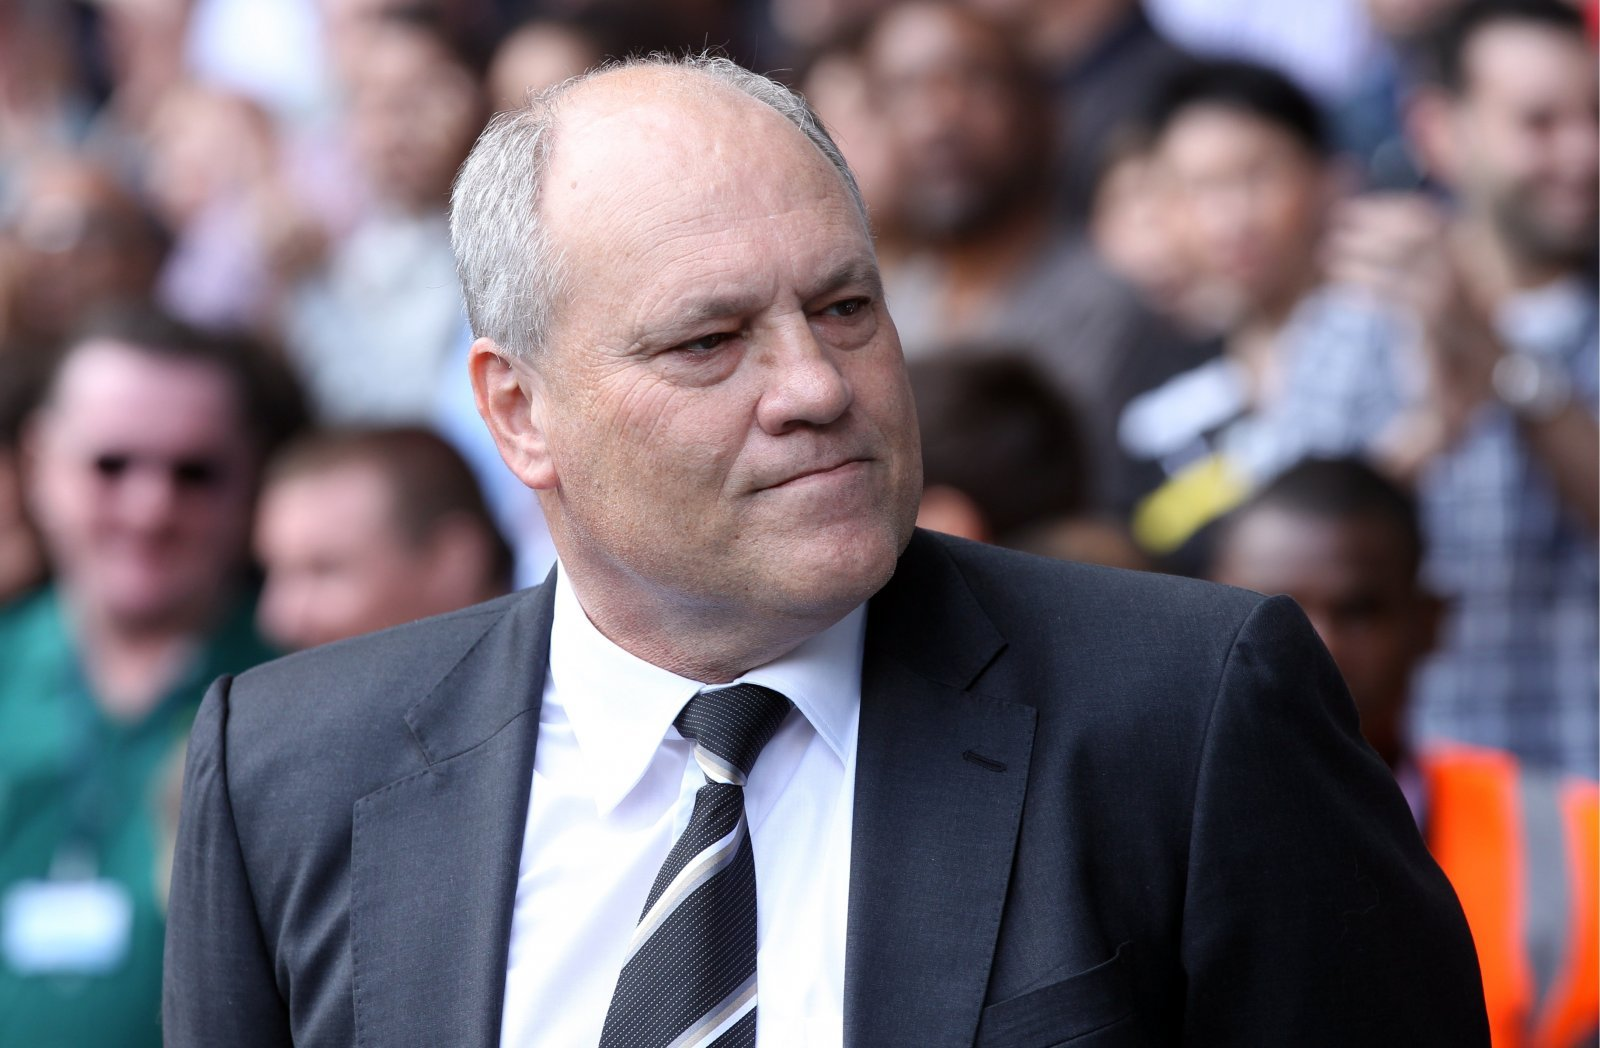 Chris Hughton believes Martin Jol paved way for Mauricio Pochettino's success at Tottenham